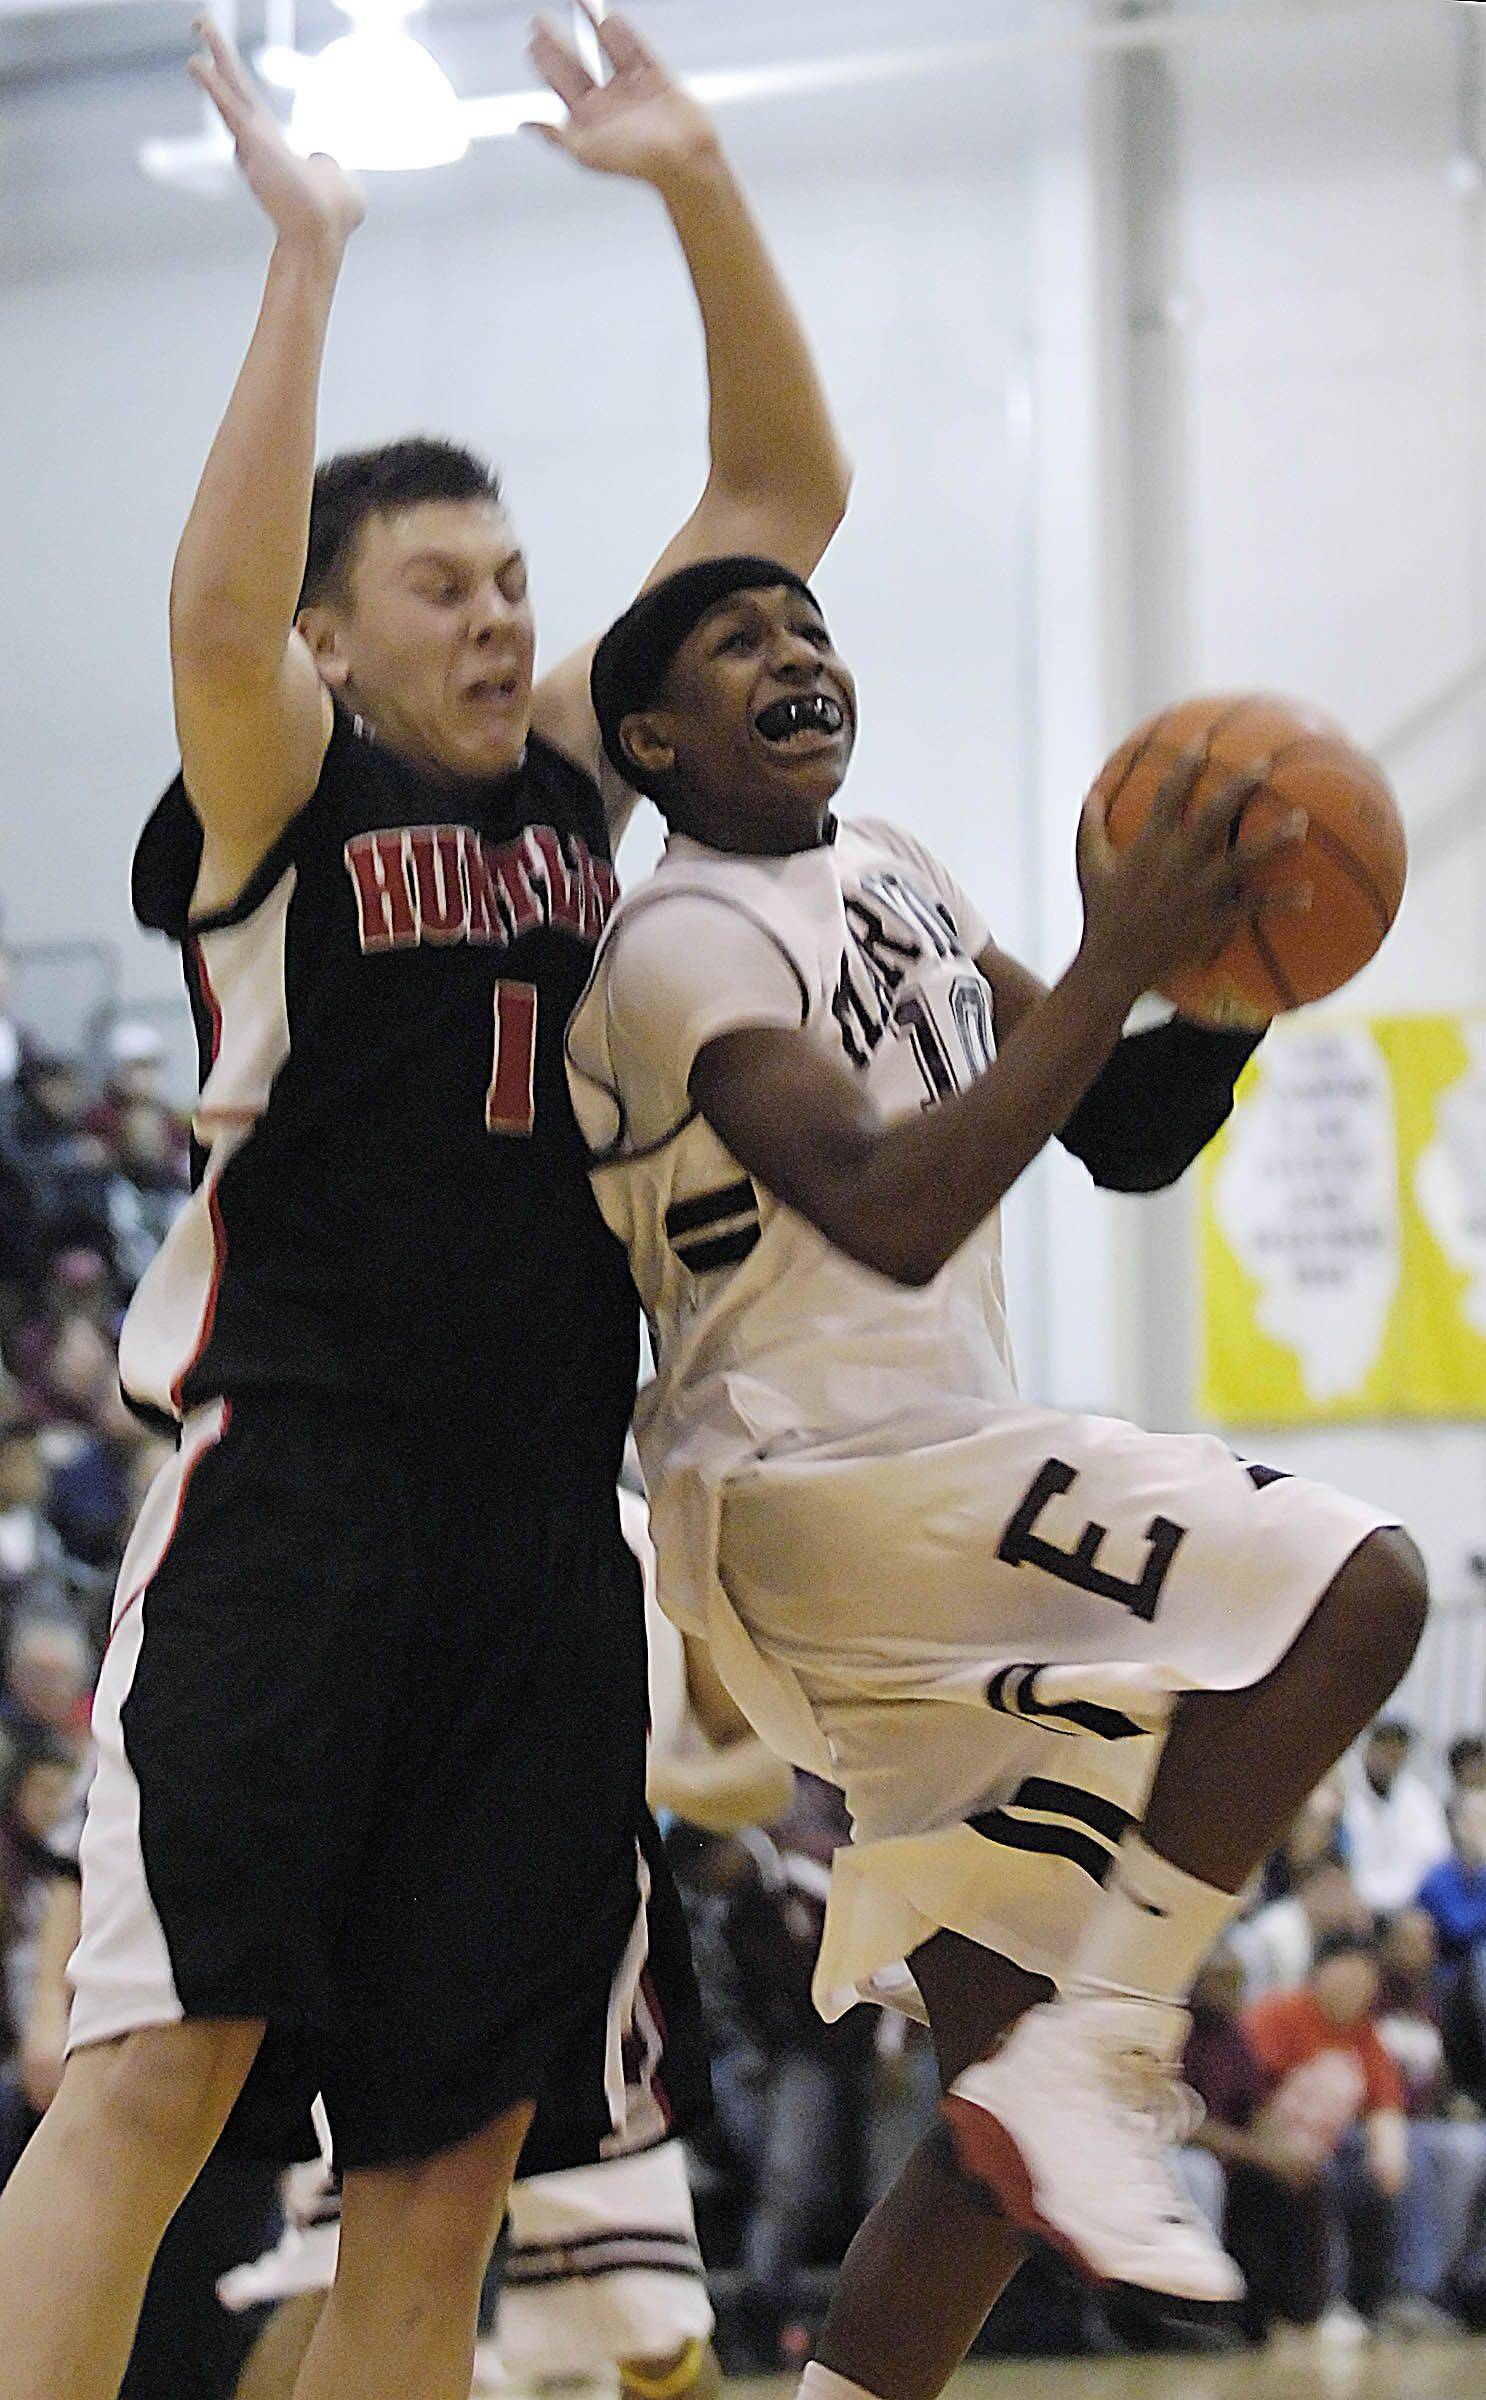 Images from the Elgin vs. Huntley boys basketball sectional semis Tuesday, March 8, 2011.